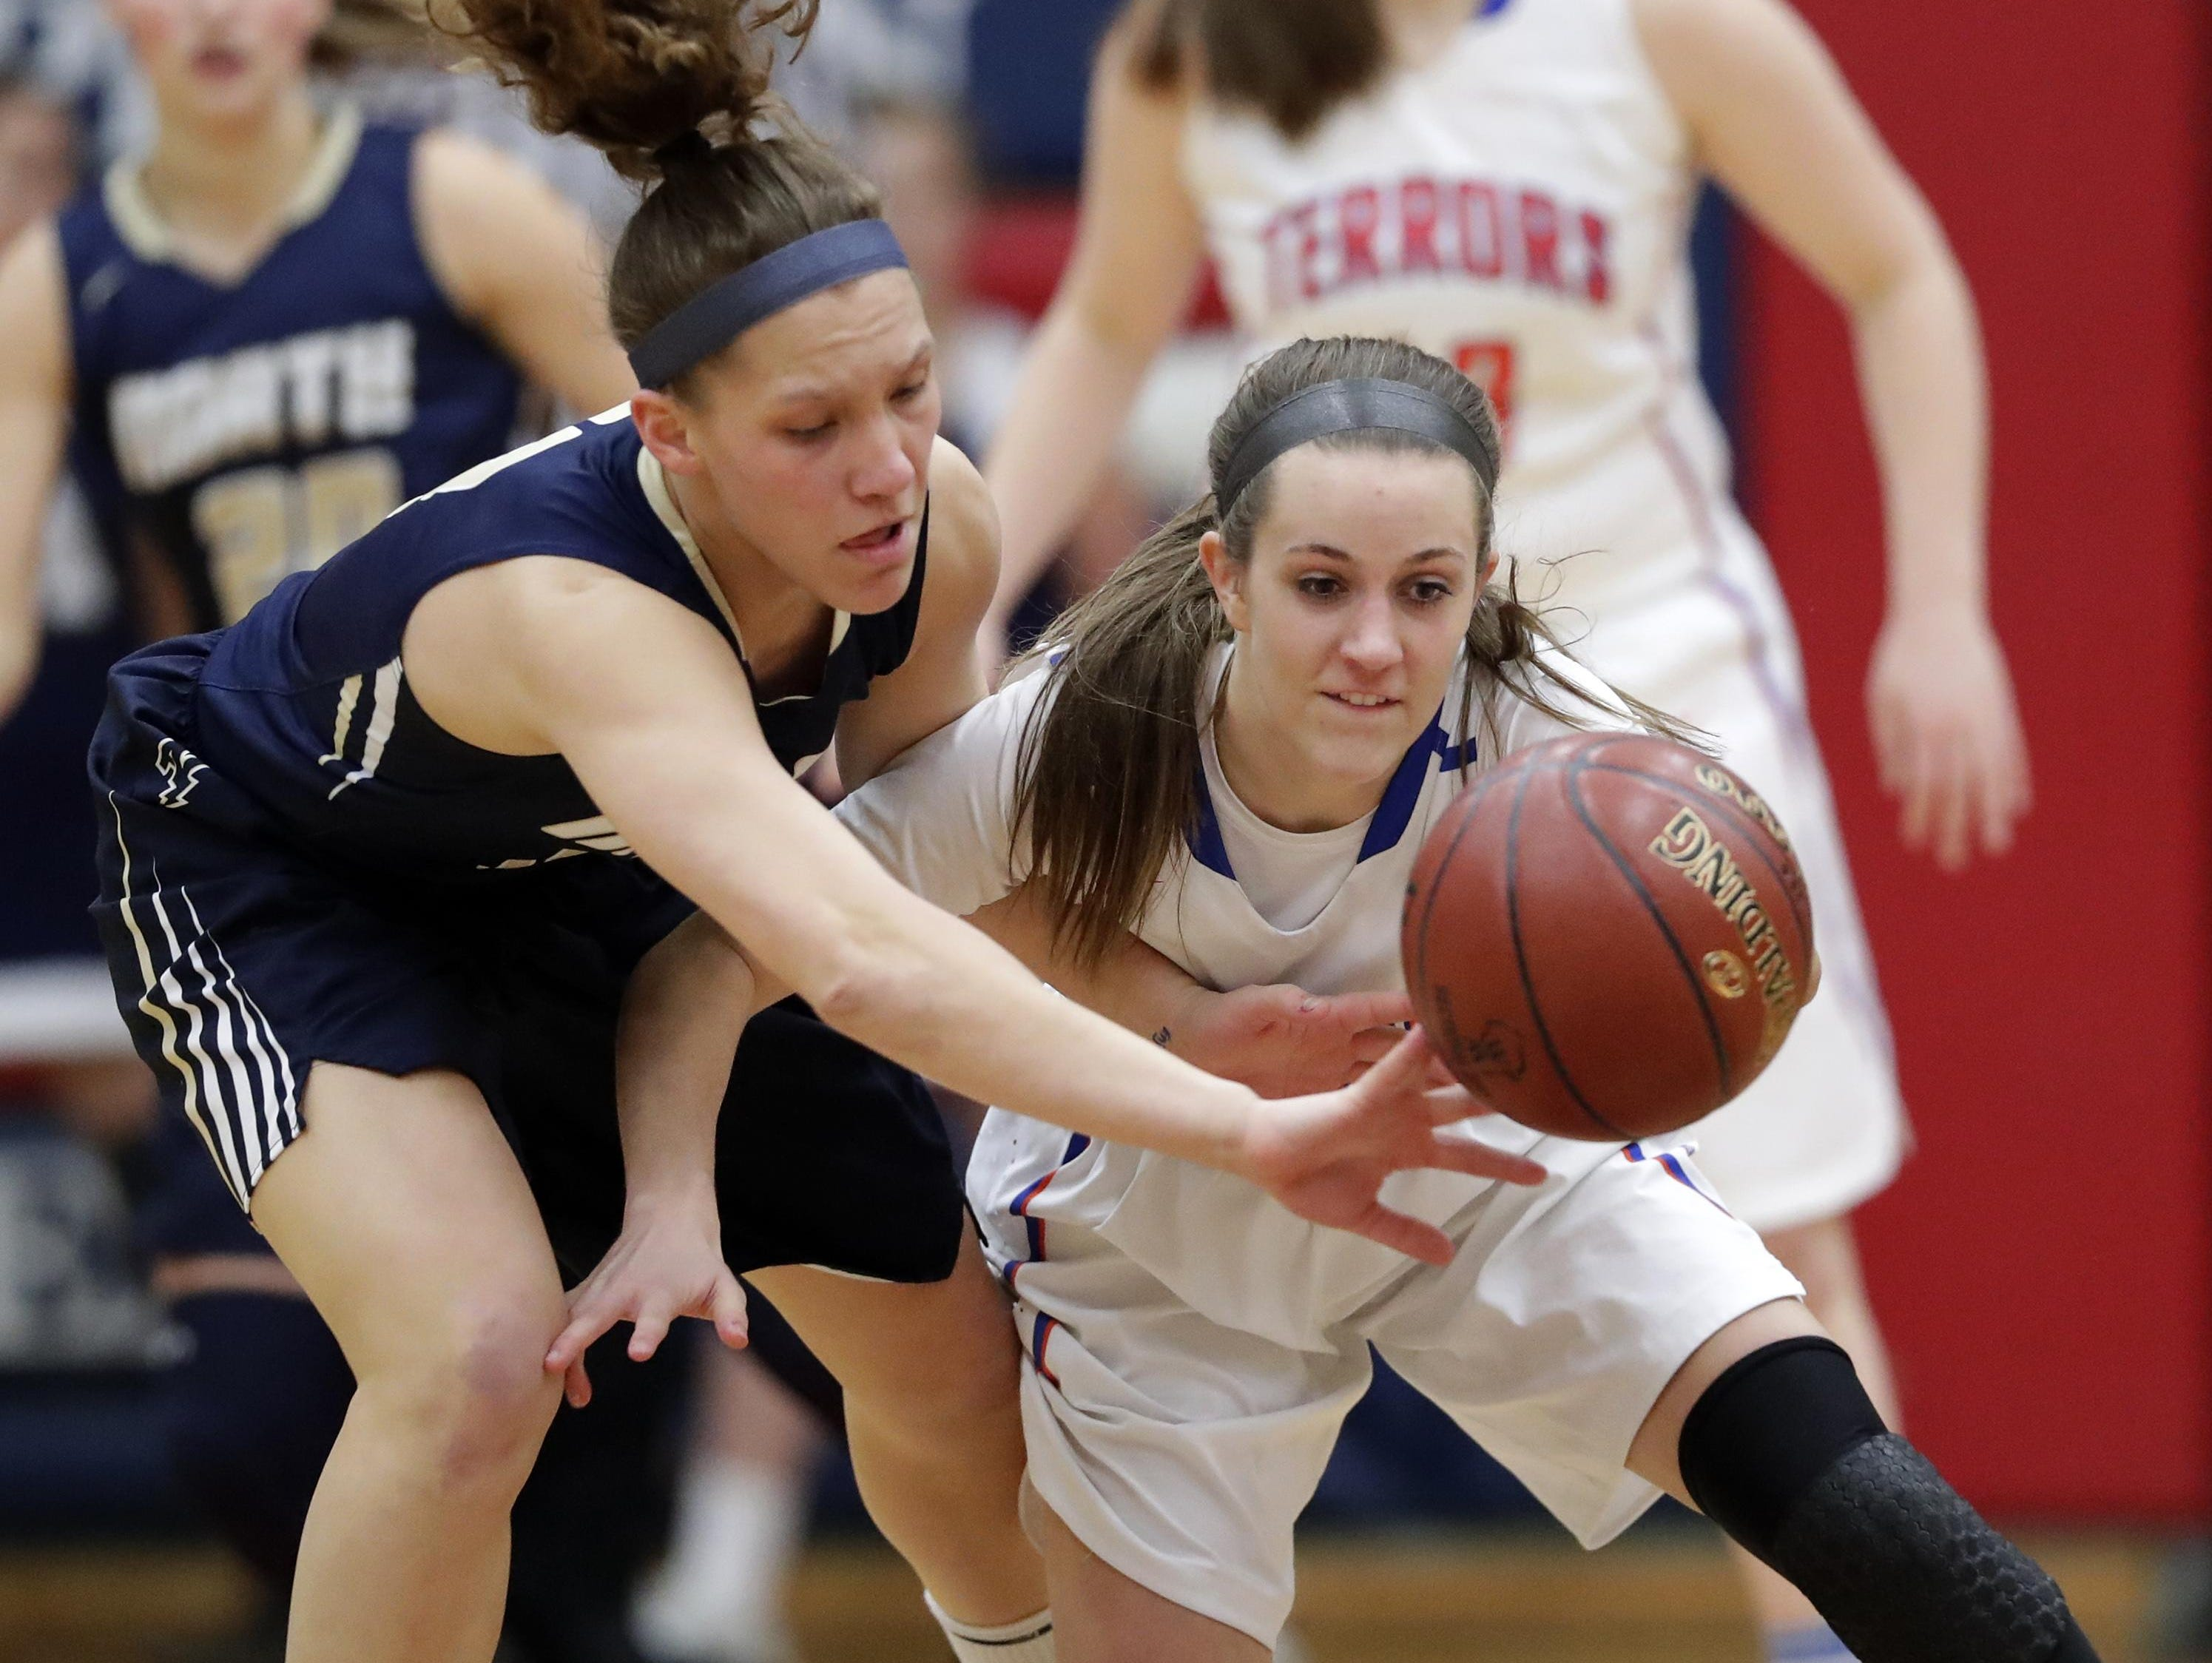 Appleton North's Callie Pohlman, left, defends a pass to Appleton West's Julia Smith on Thursday during a WIAA Division 1 sectional semifinal game at Appleton East.